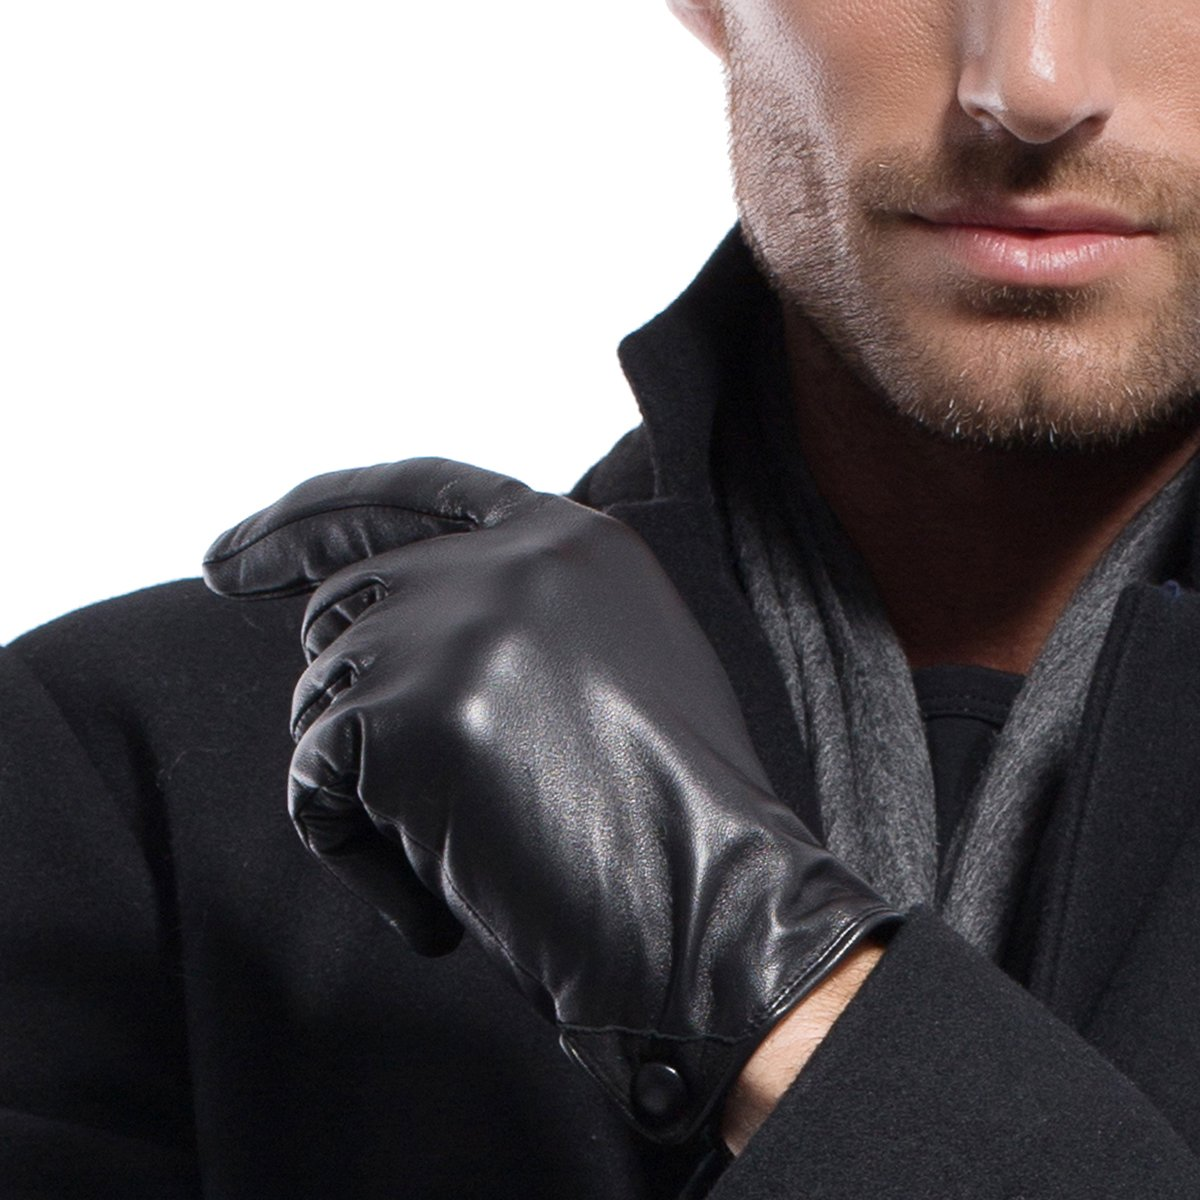 MATSU Men's Touchscreen Leather Soft Cashmere Lined Gloves Police Style M1005 (Black,XL)